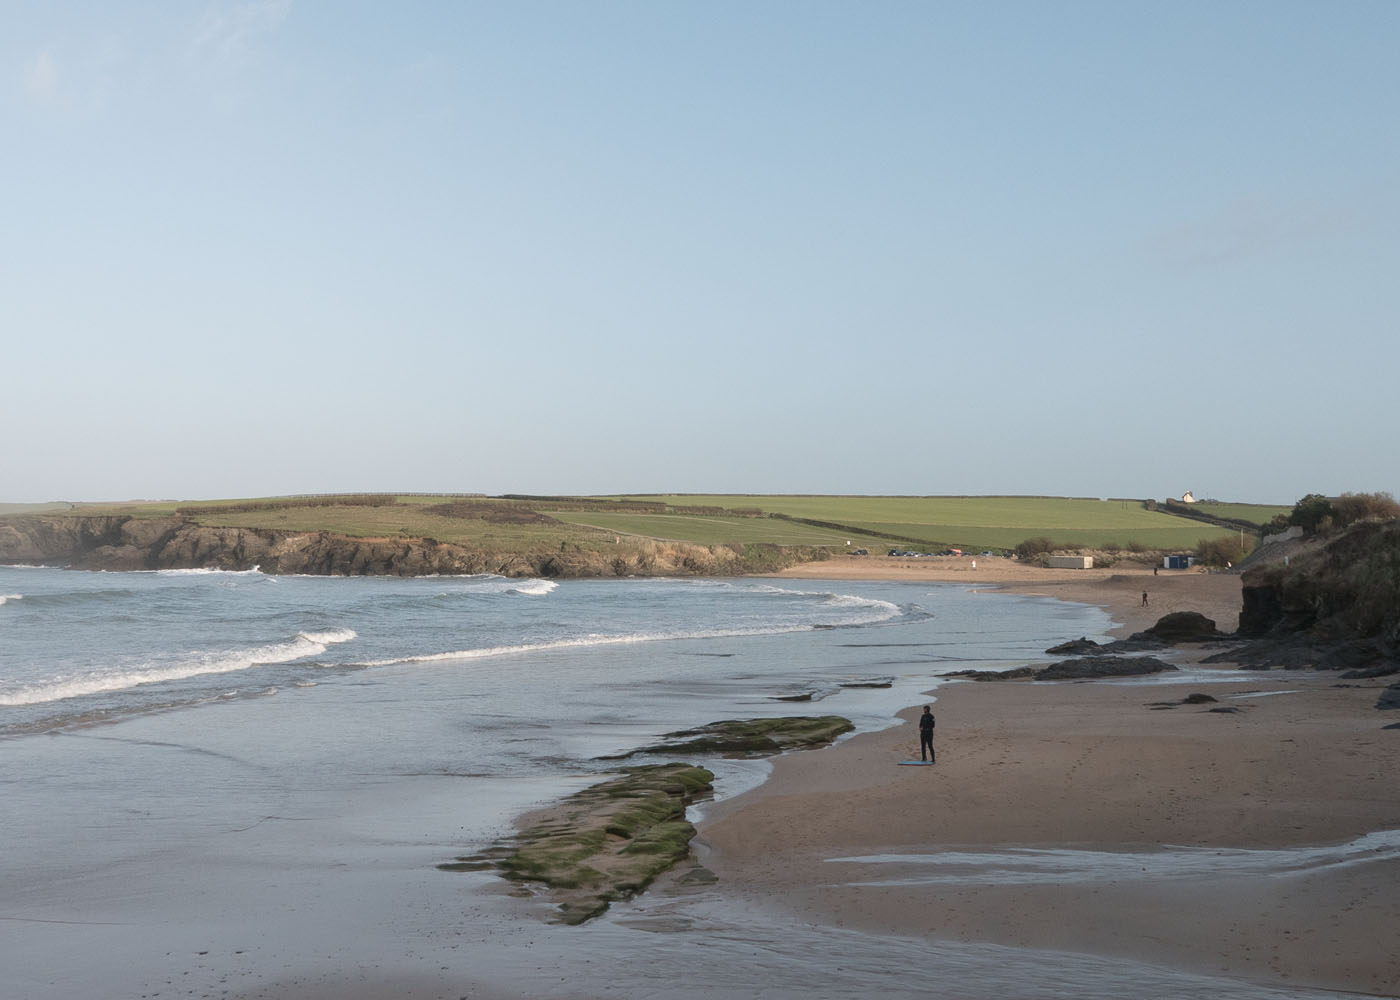 Harlyn Bay in North Cornwall near Padstow